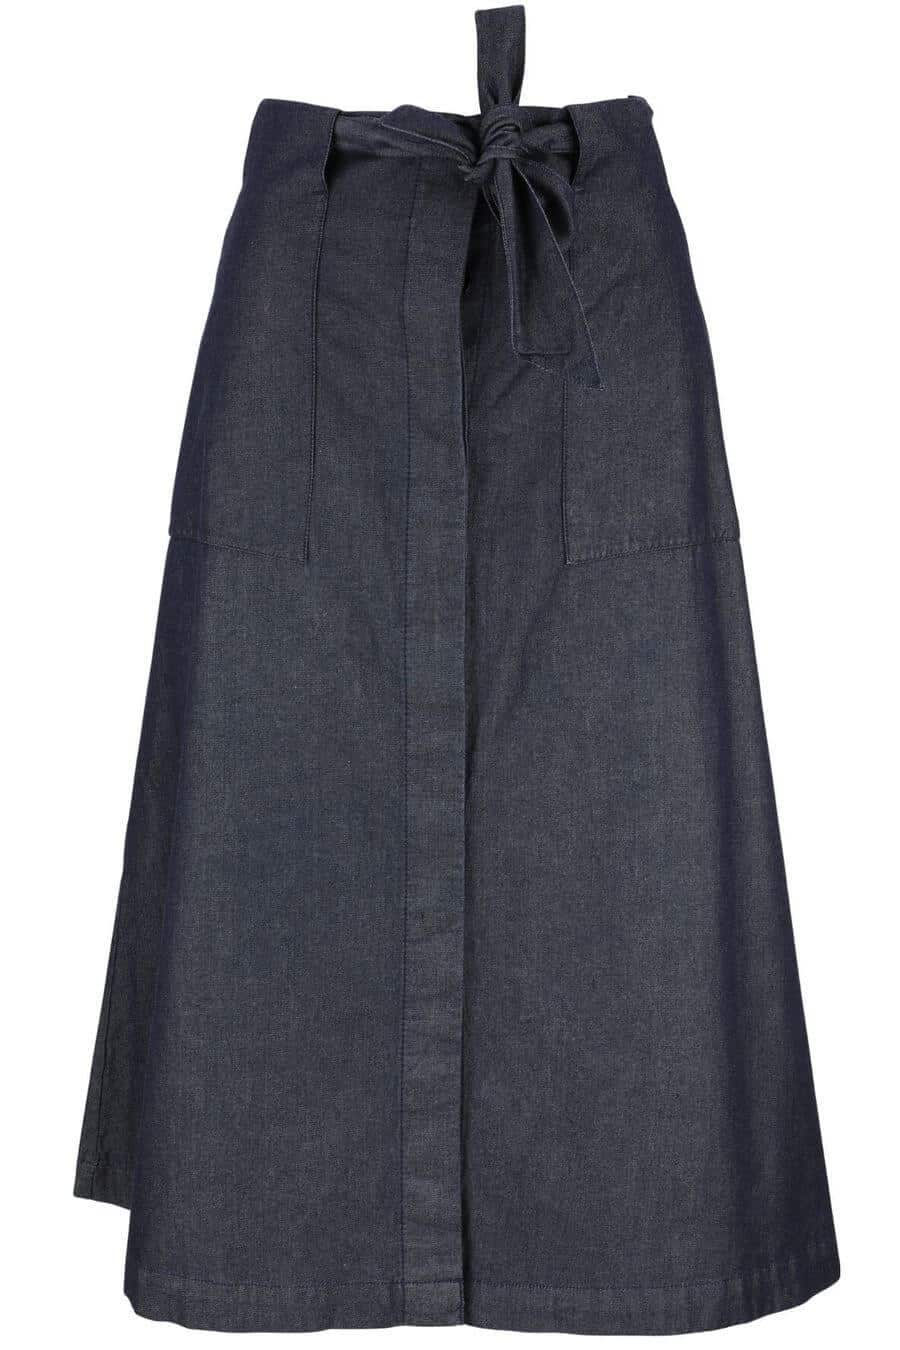 Style Theory_massimo-dutti-denim-skirt-with-bow-detail-1